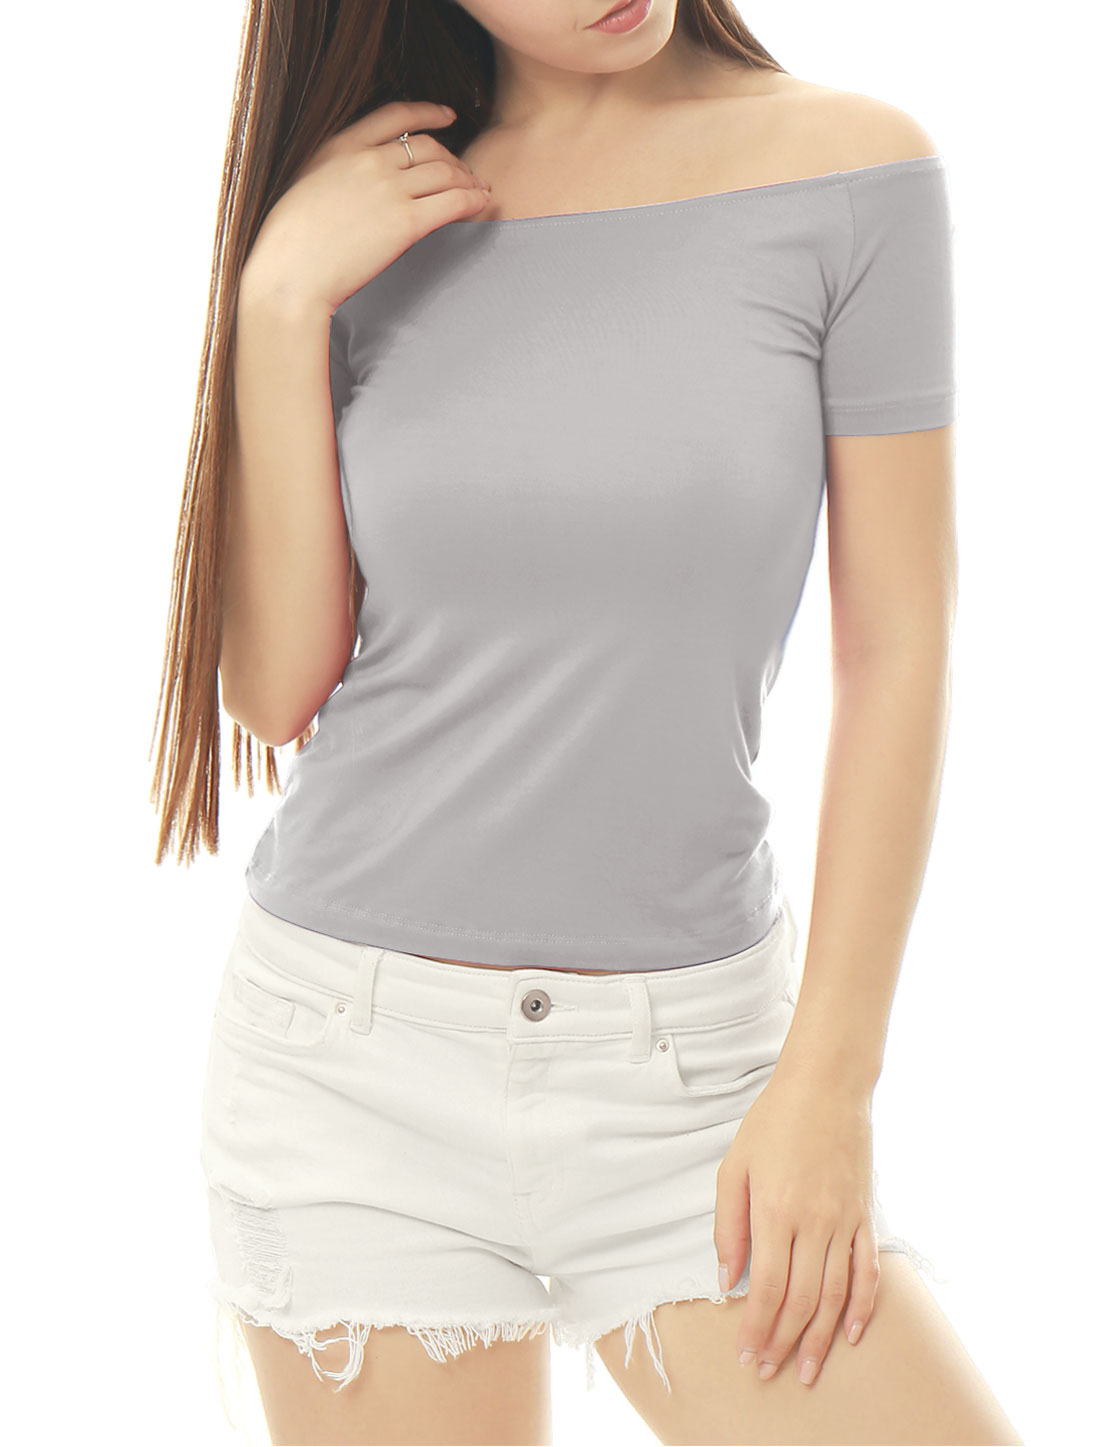 Women Short Sleeves Slim Fit Off the Shoulder Top Gray L